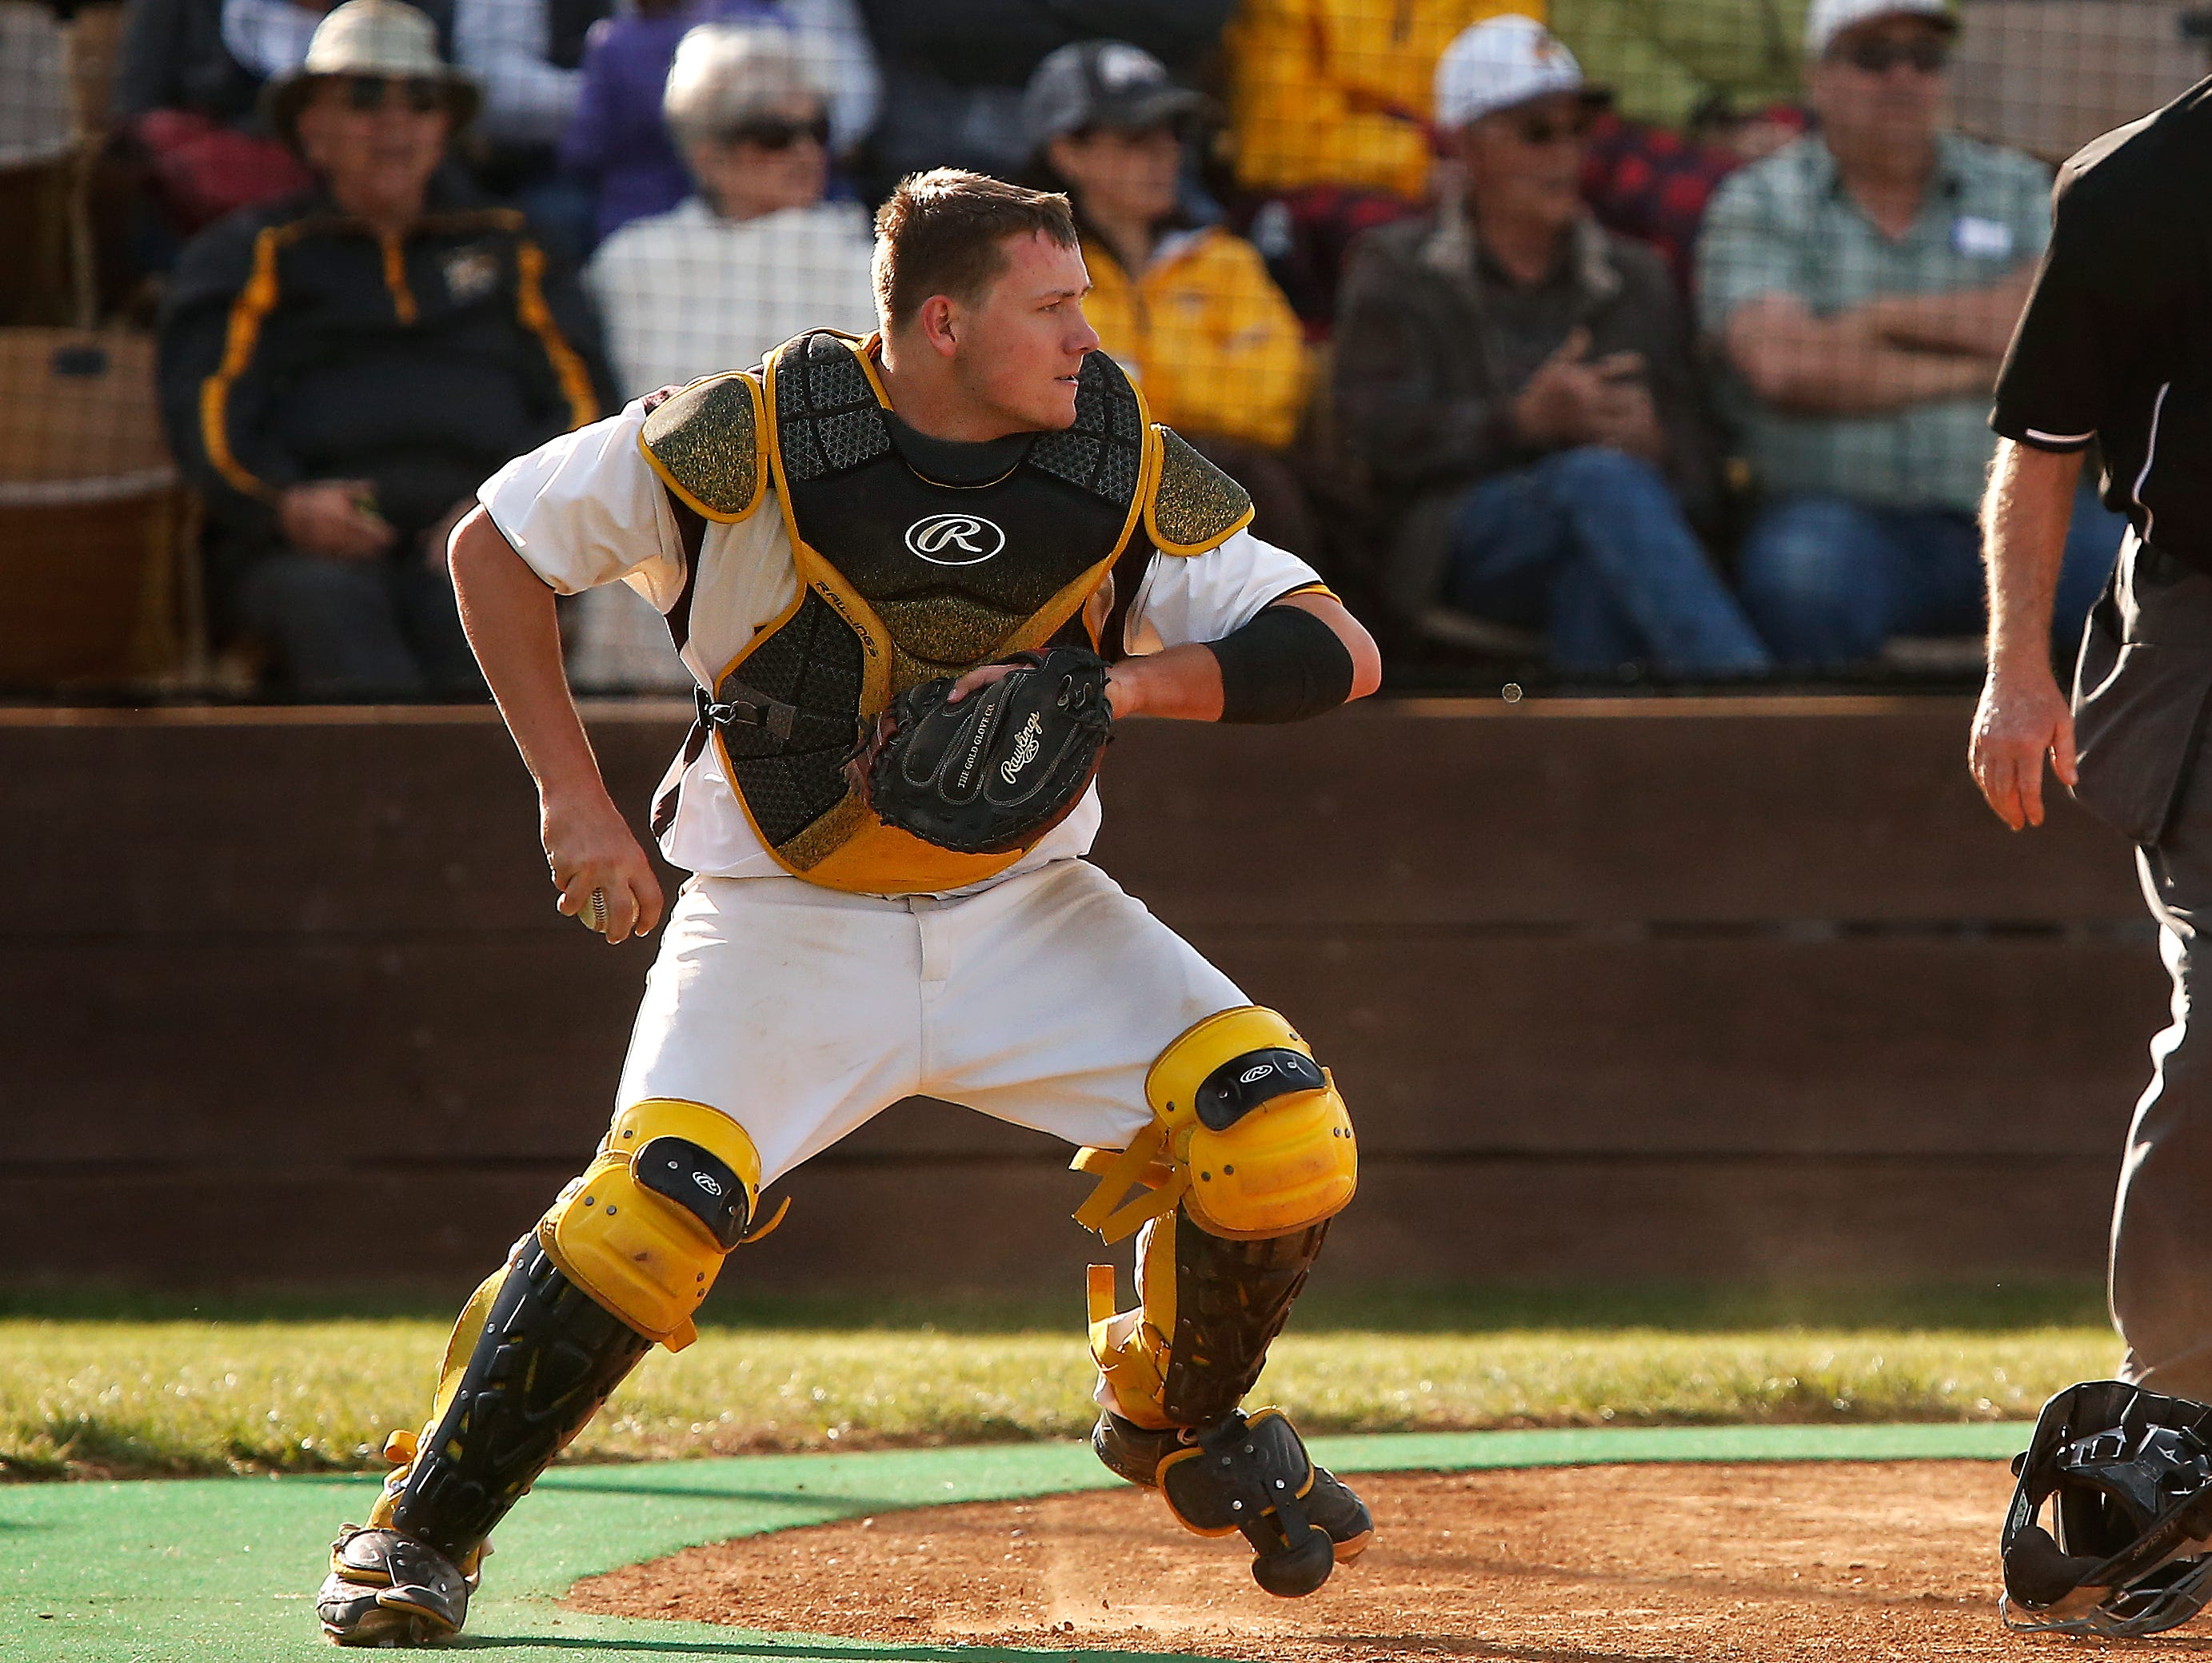 Kickapoo High School catcher Westin Gann (15) throws the ball to third base during fourth inning action of the high school baseball game between Kickapoo and Ozark at Kickapoo High School in Springfield, Mo. on March 29, 2016.